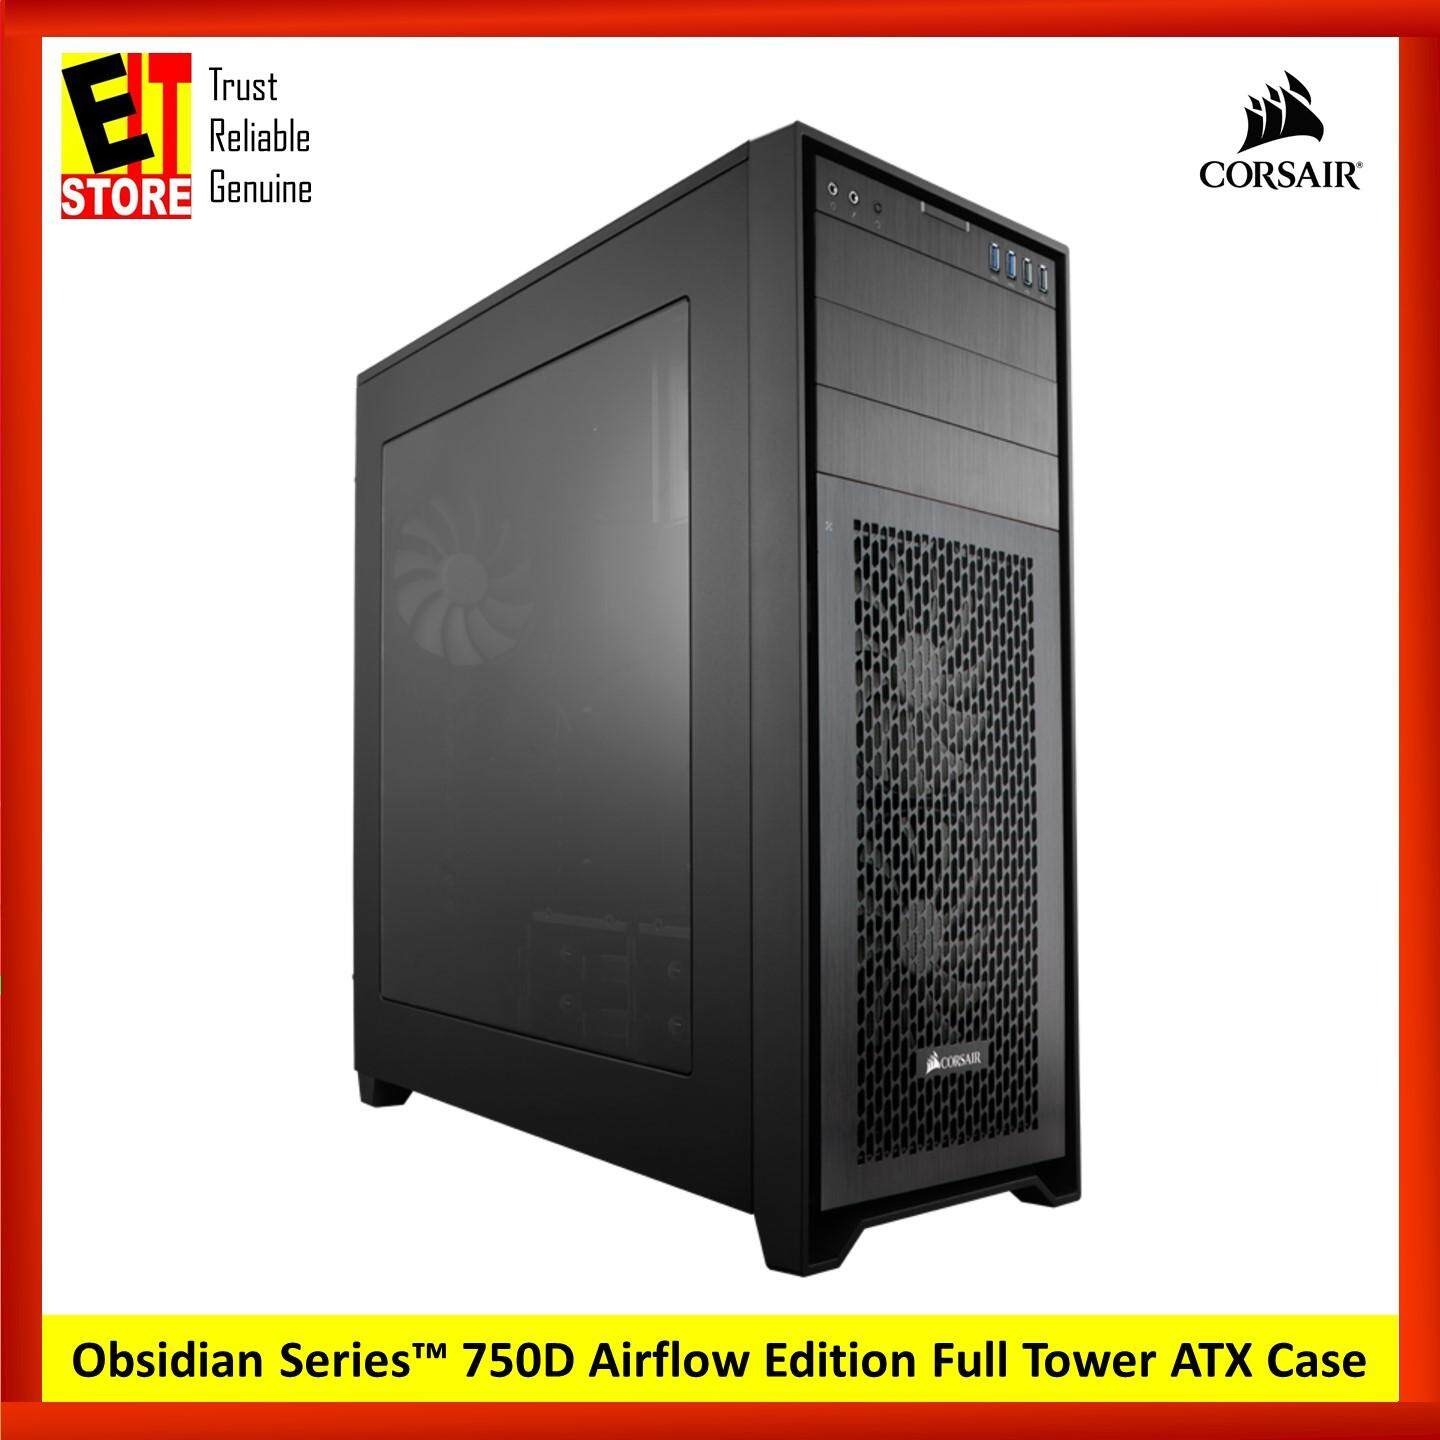 CORSAIR OBSIDIAN SERIES 750D AIRFLOW EDITION FULL TOWER ATX CASE (CC-9011078-WW) Malaysia